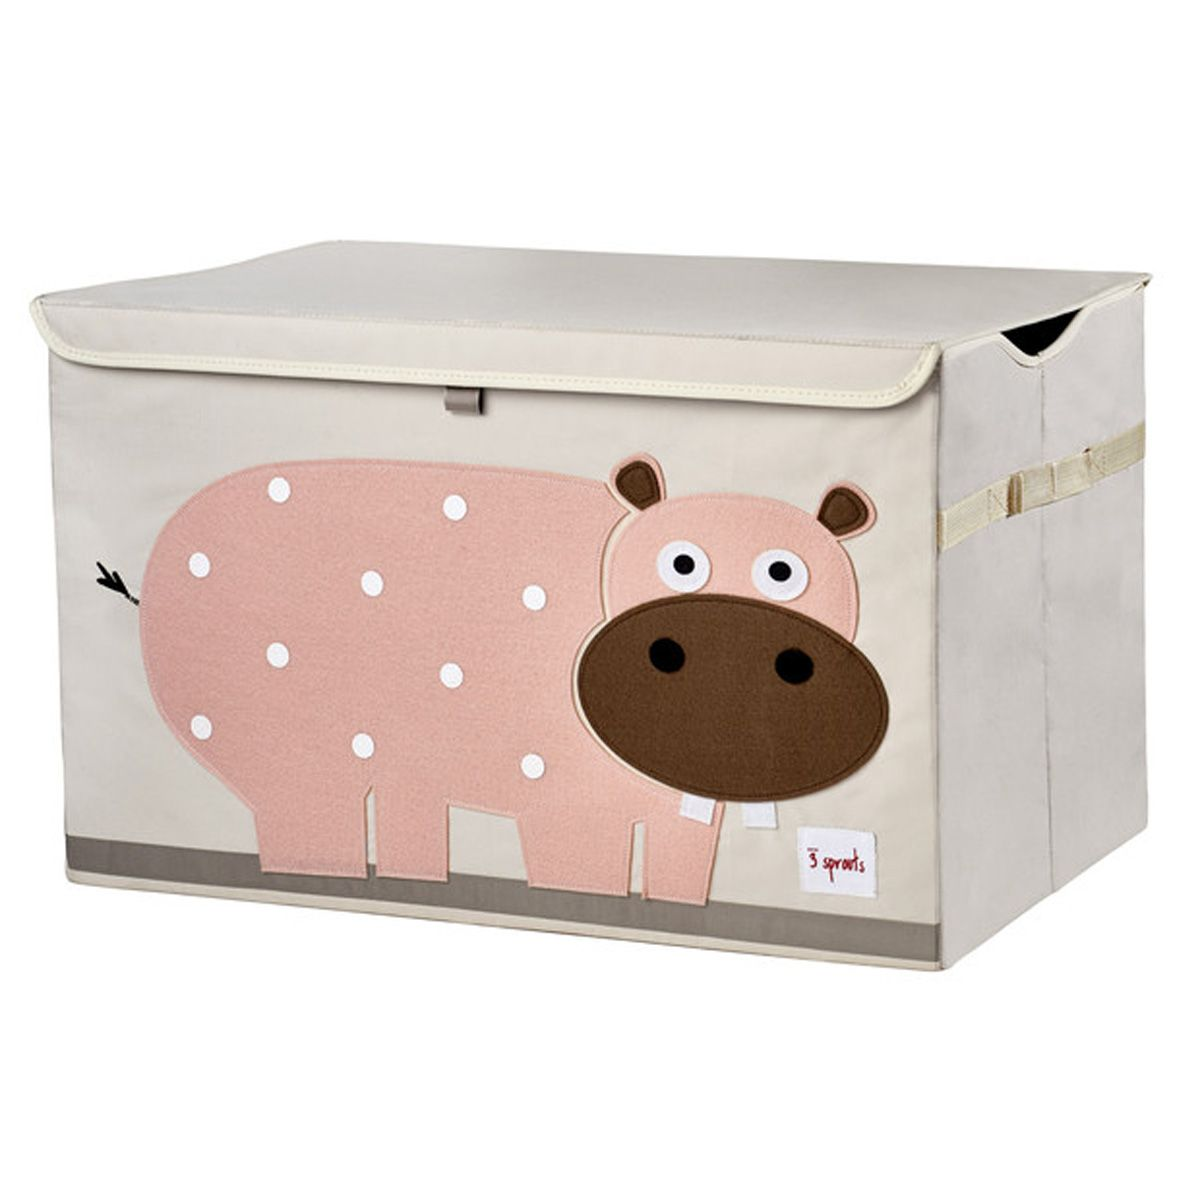 spielzeugkiste truhe 39 toy chest 39 nilpferd von 3 sprouts kaufen. Black Bedroom Furniture Sets. Home Design Ideas